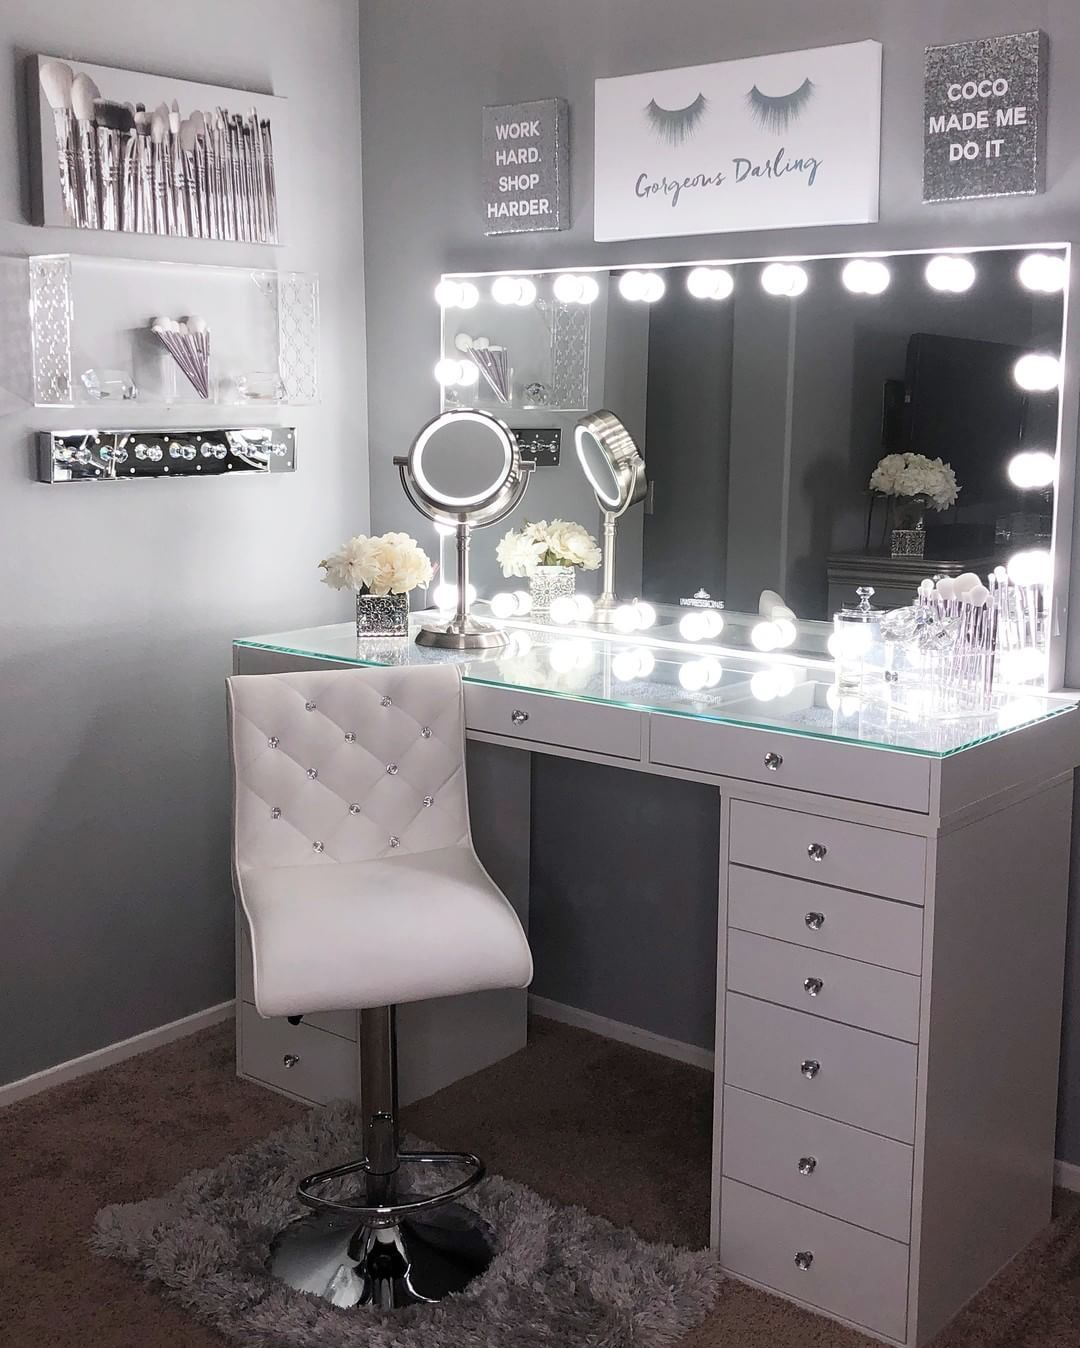 Makeup Room Ideas images